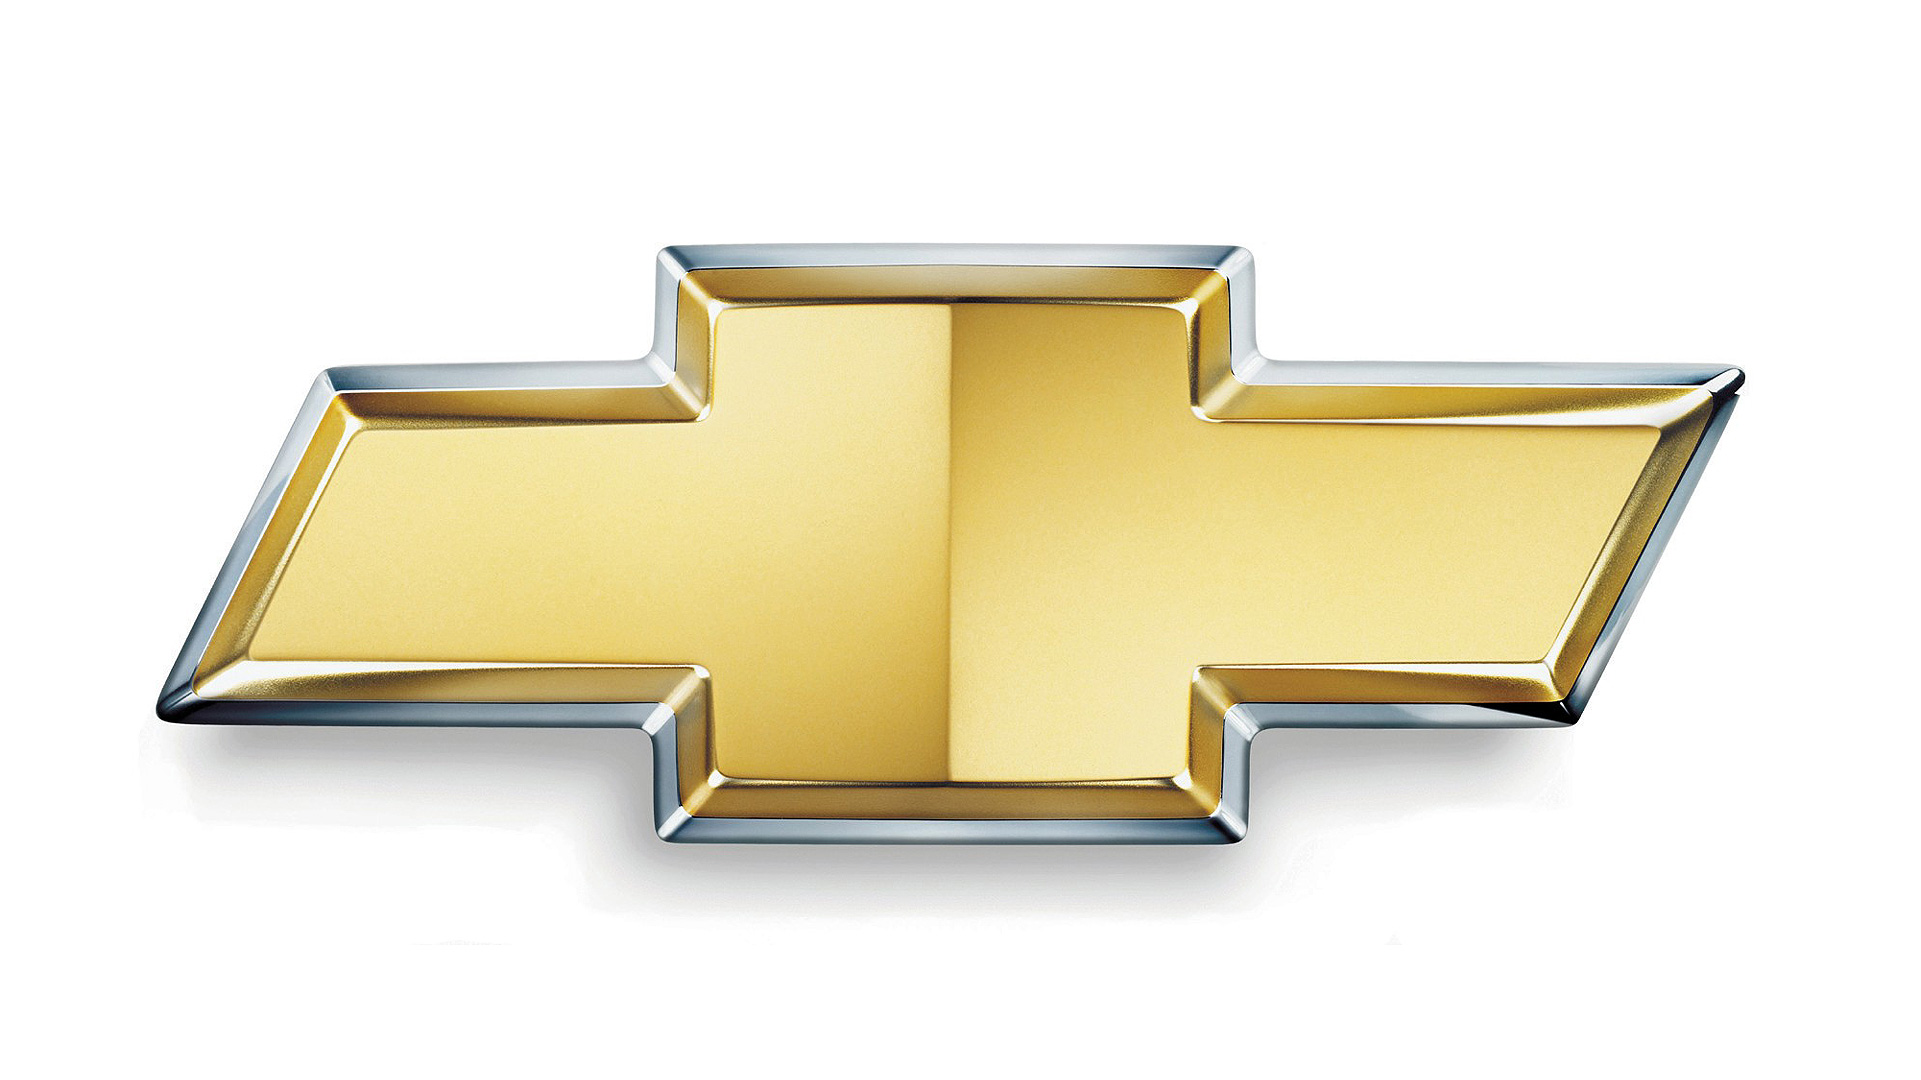 Chevrolet Logo, Hd Png, Meaning, Information - Chevrolet Logo PNG